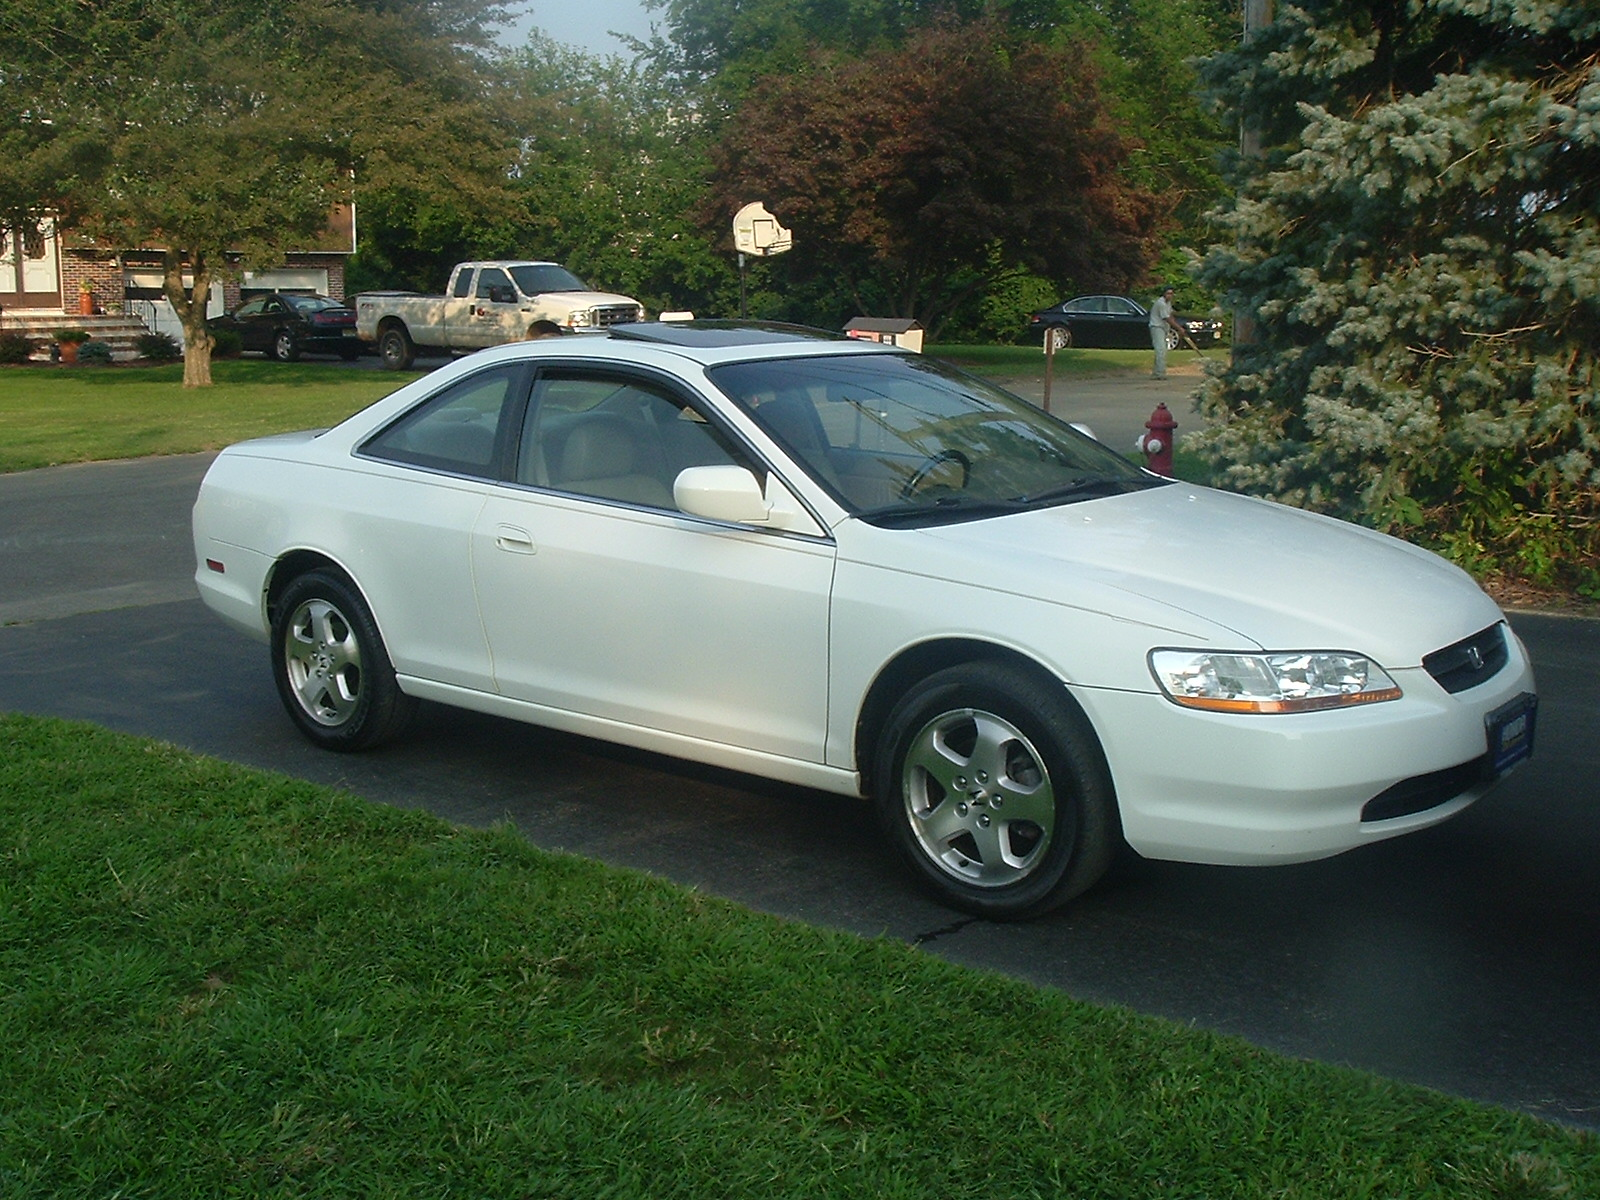 Picture of 2000 Honda Accord EX V6 Coupe  exteriorHonda Accord 2000 Coupe